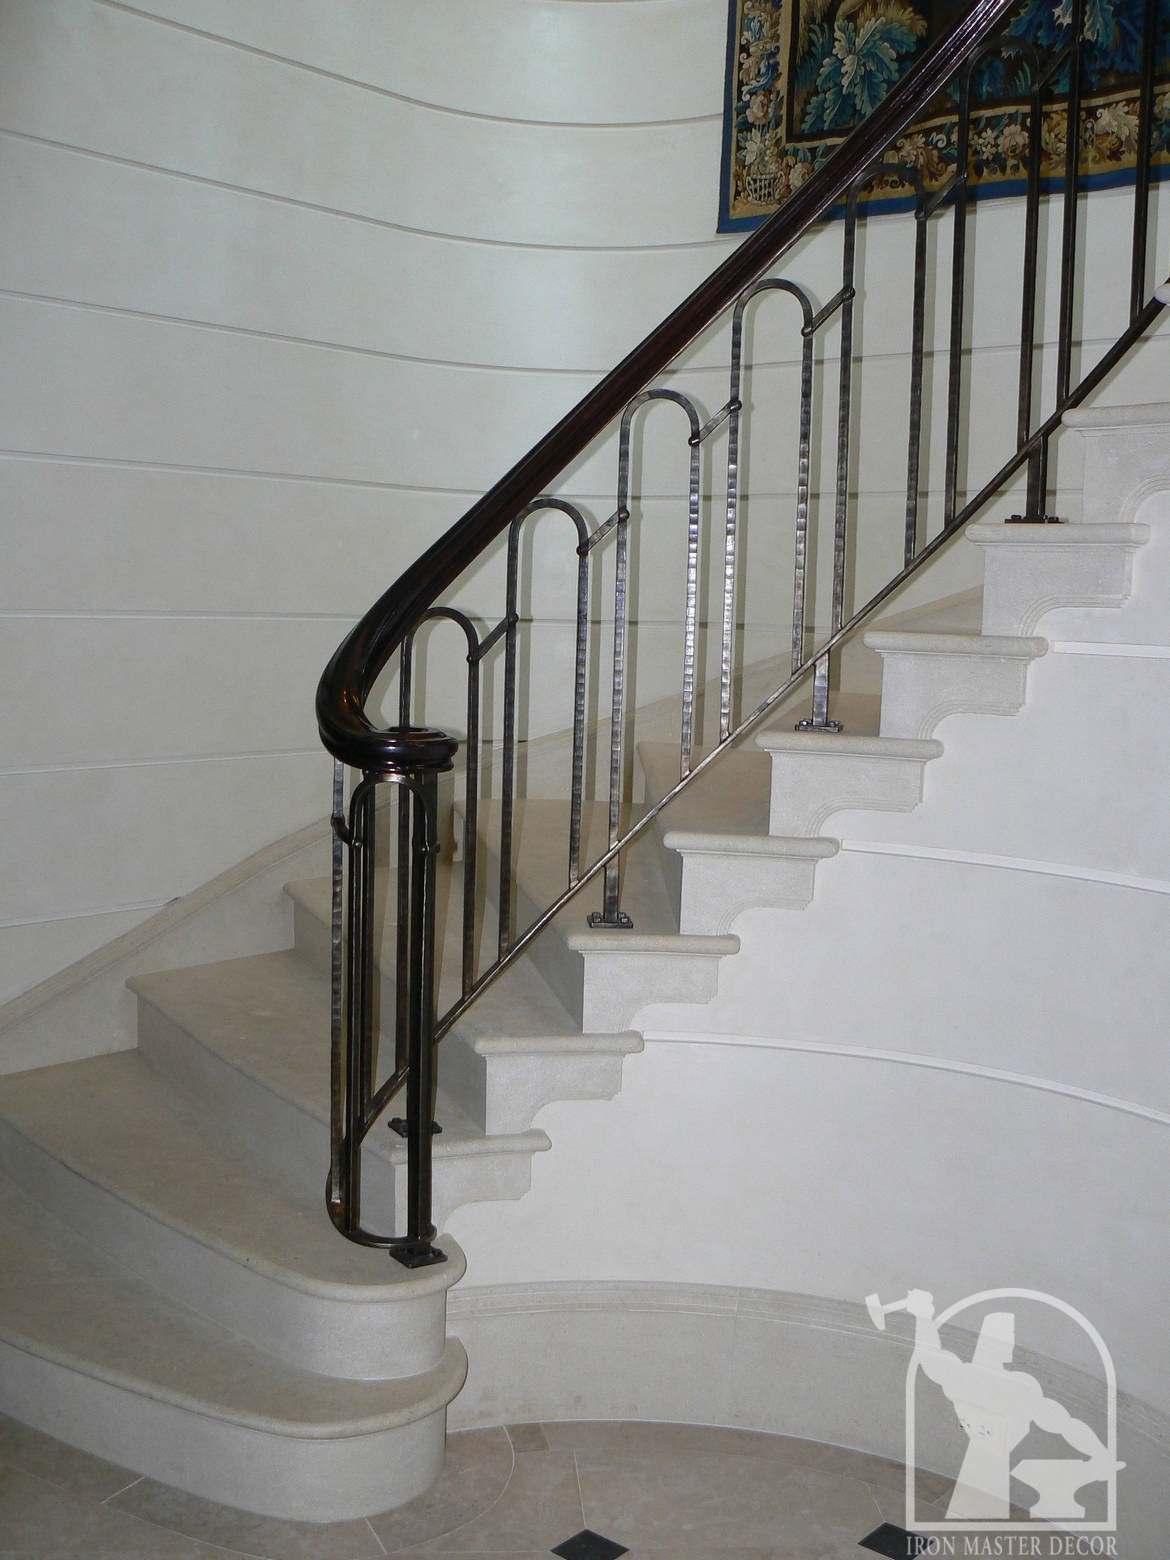 wrought iron indoor railing brown metal wroughtironinteriorrailing2 custom interior railings iron master toronto modern and traditional